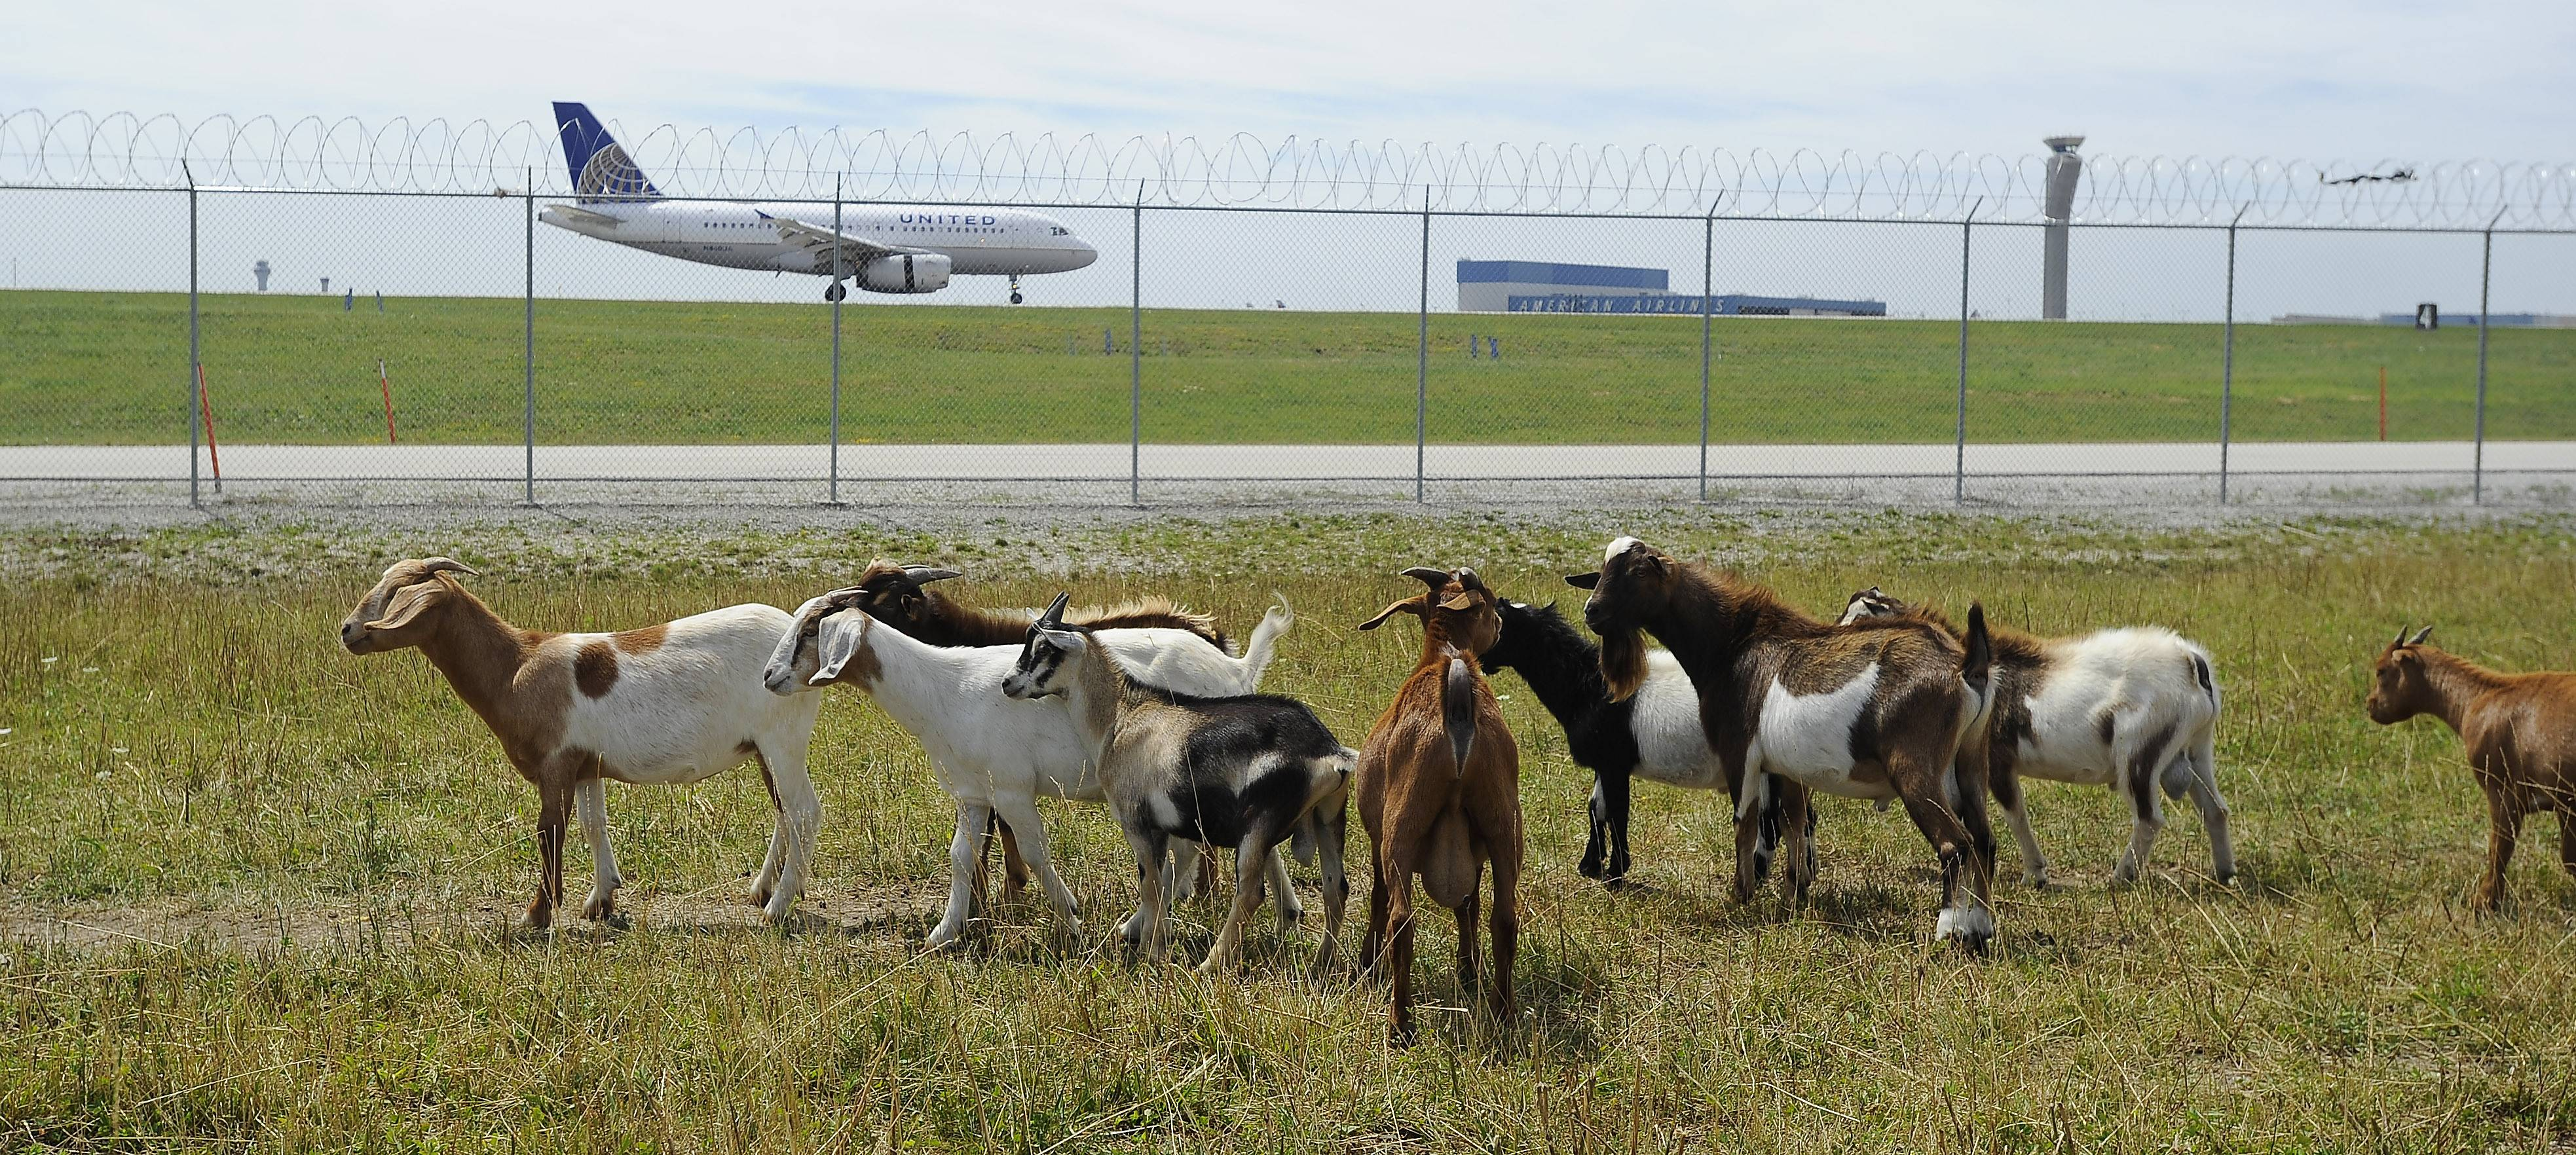 It takes a herd of goats, llamas and sheep to mow O'Hare